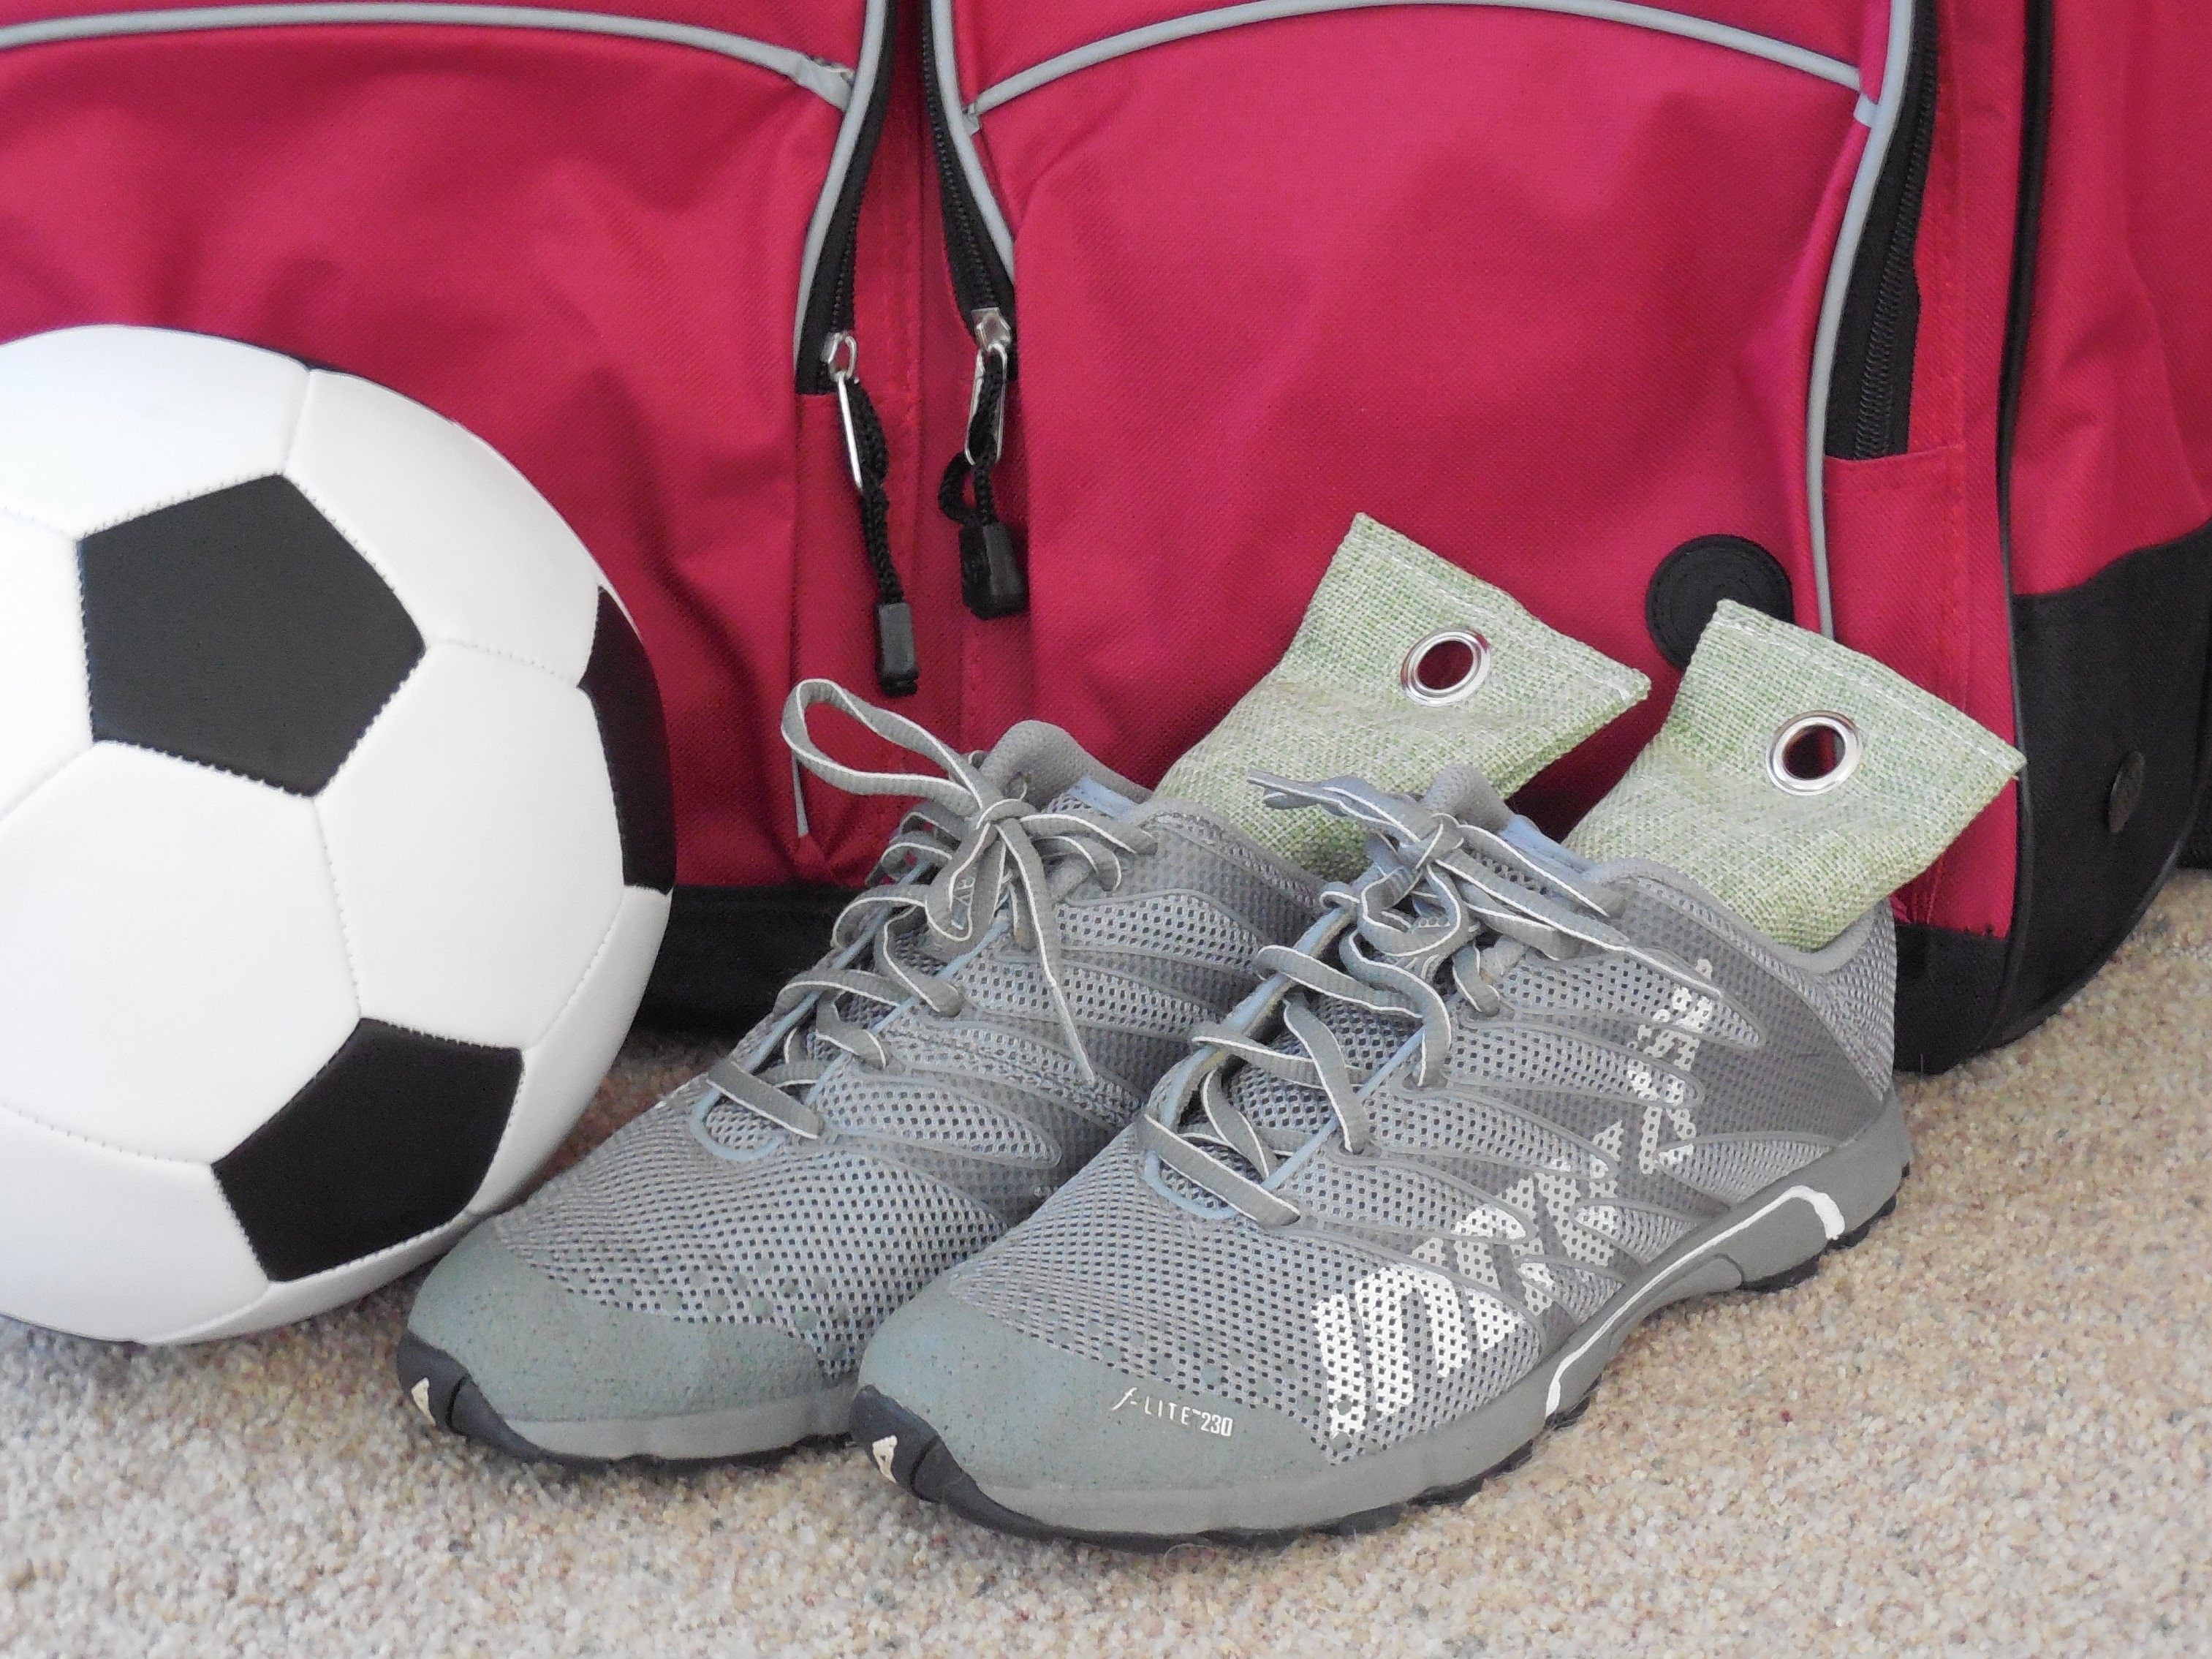 deodorizers inside sports shoes with soccer ball and red gym bag in background